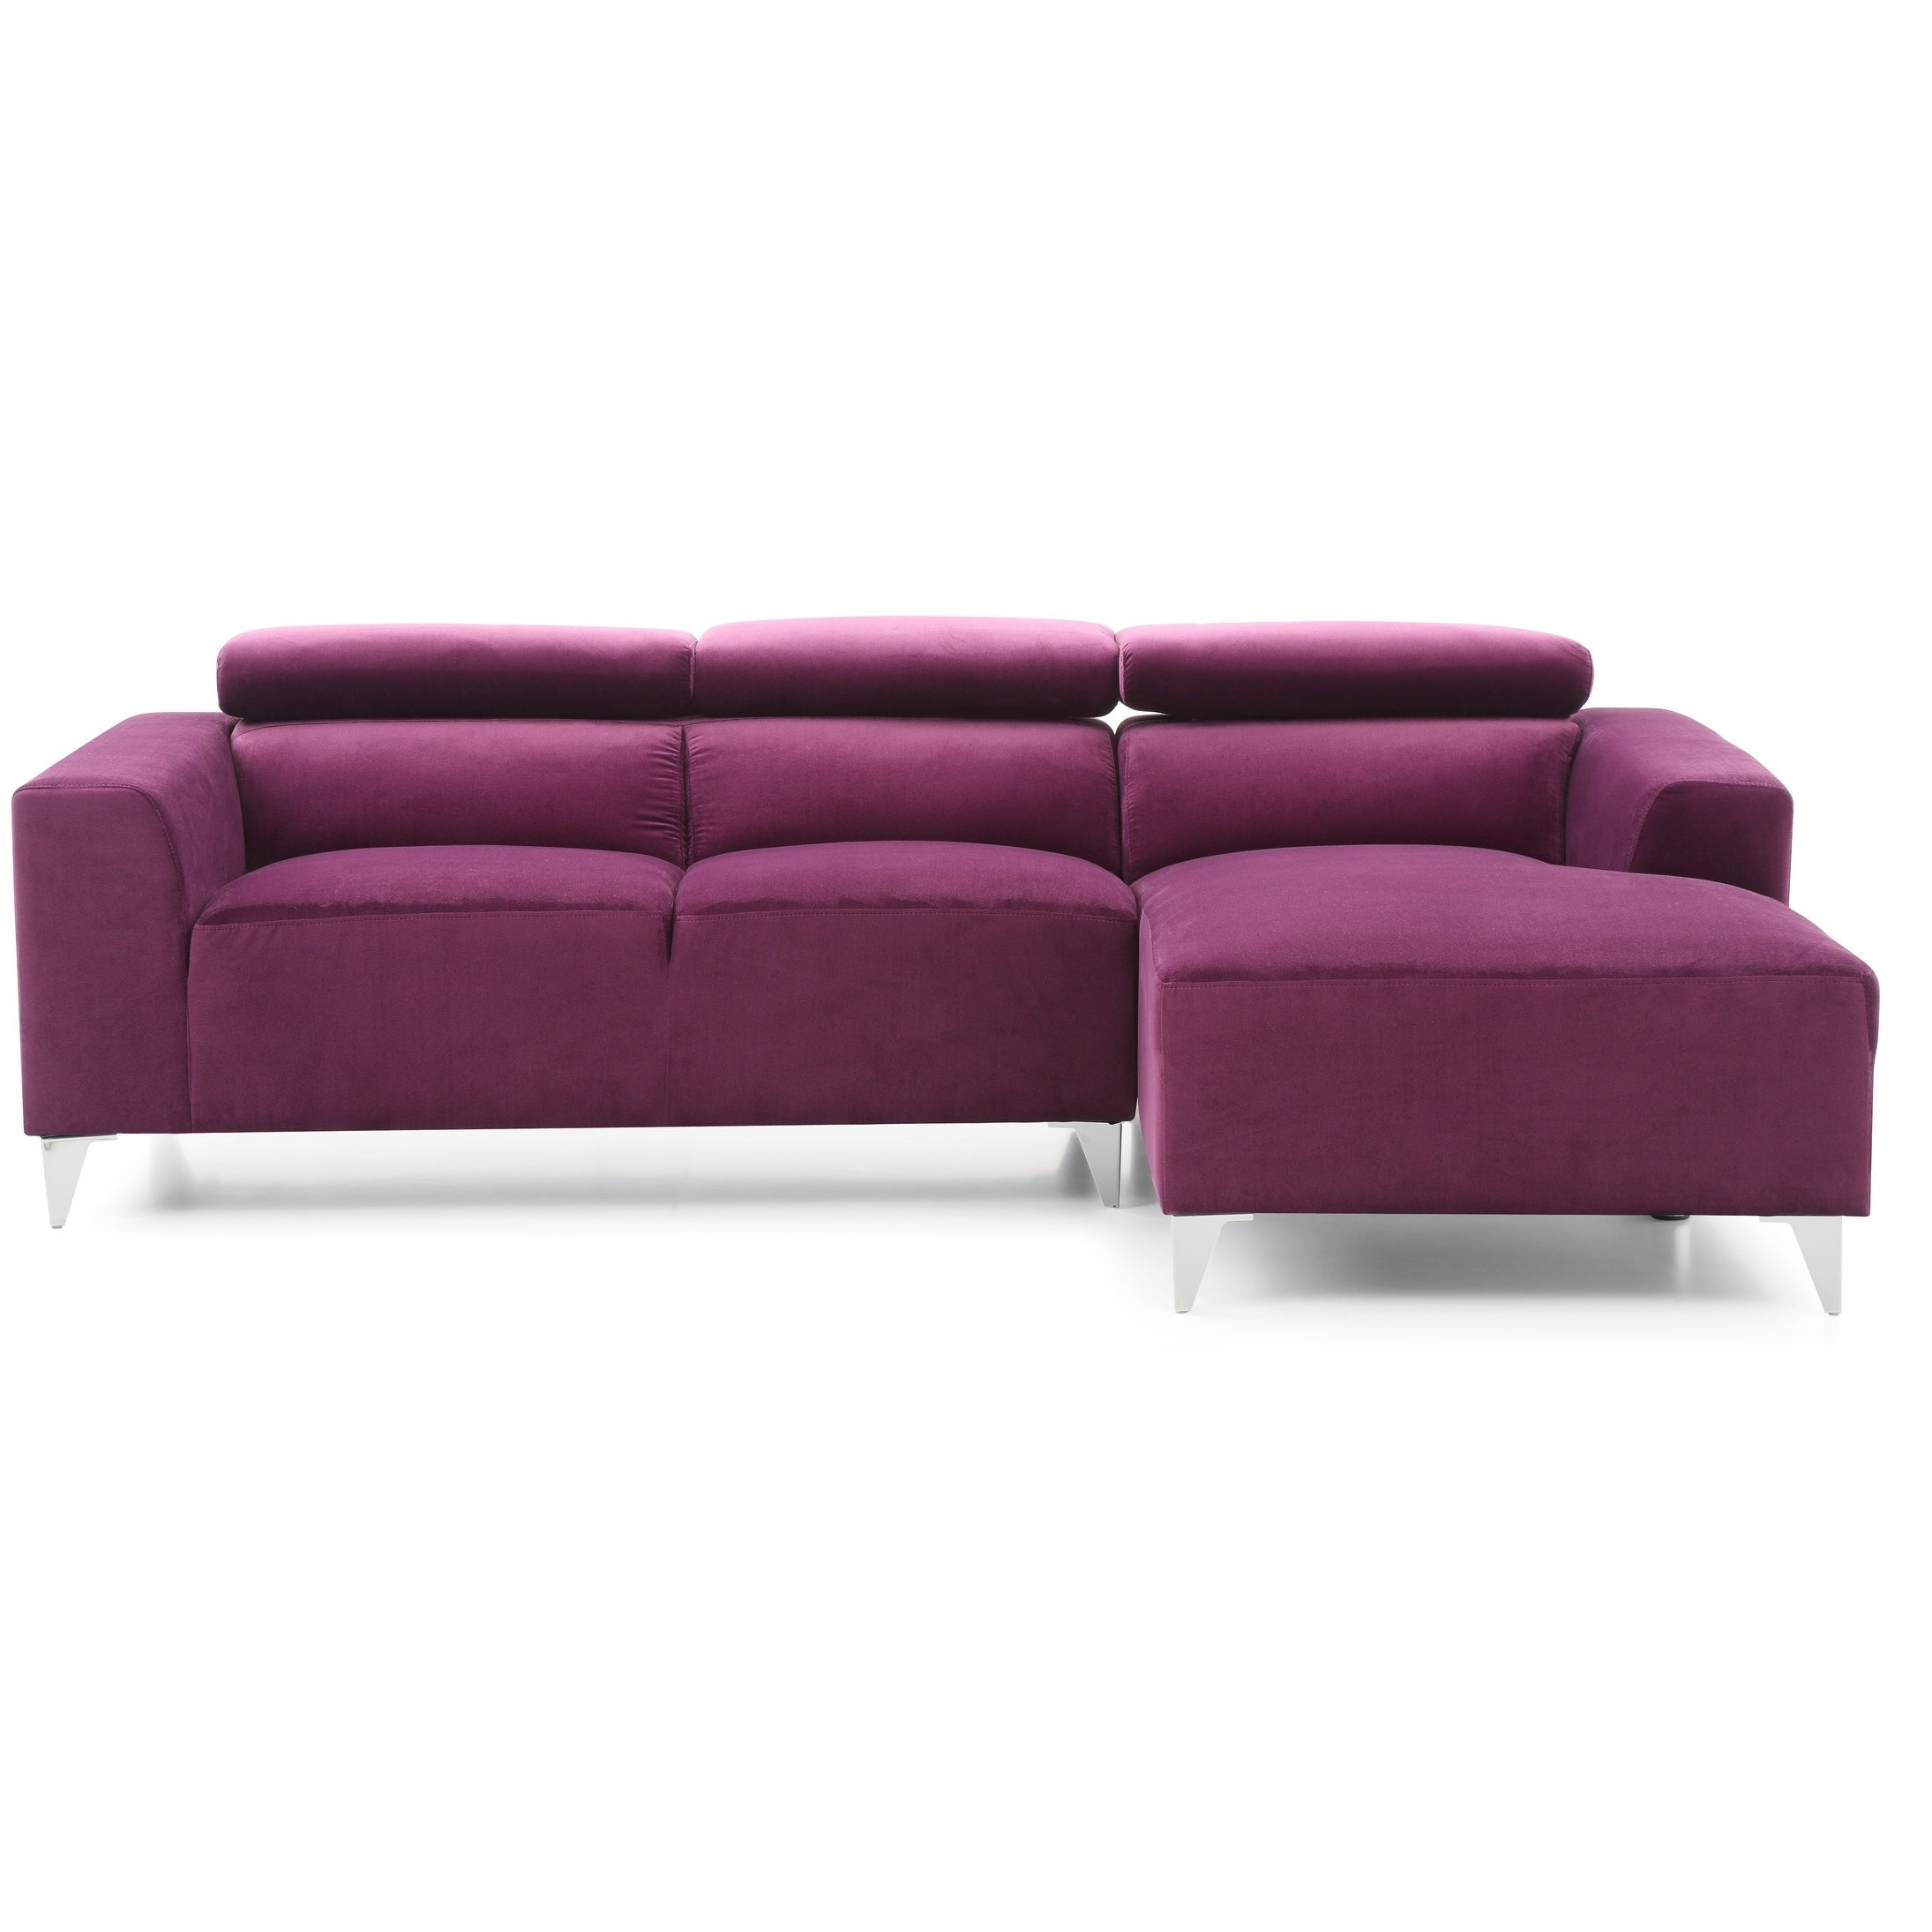 Wondrous Lyke Home Leila Purple Sectional Ibusinesslaw Wood Chair Design Ideas Ibusinesslaworg